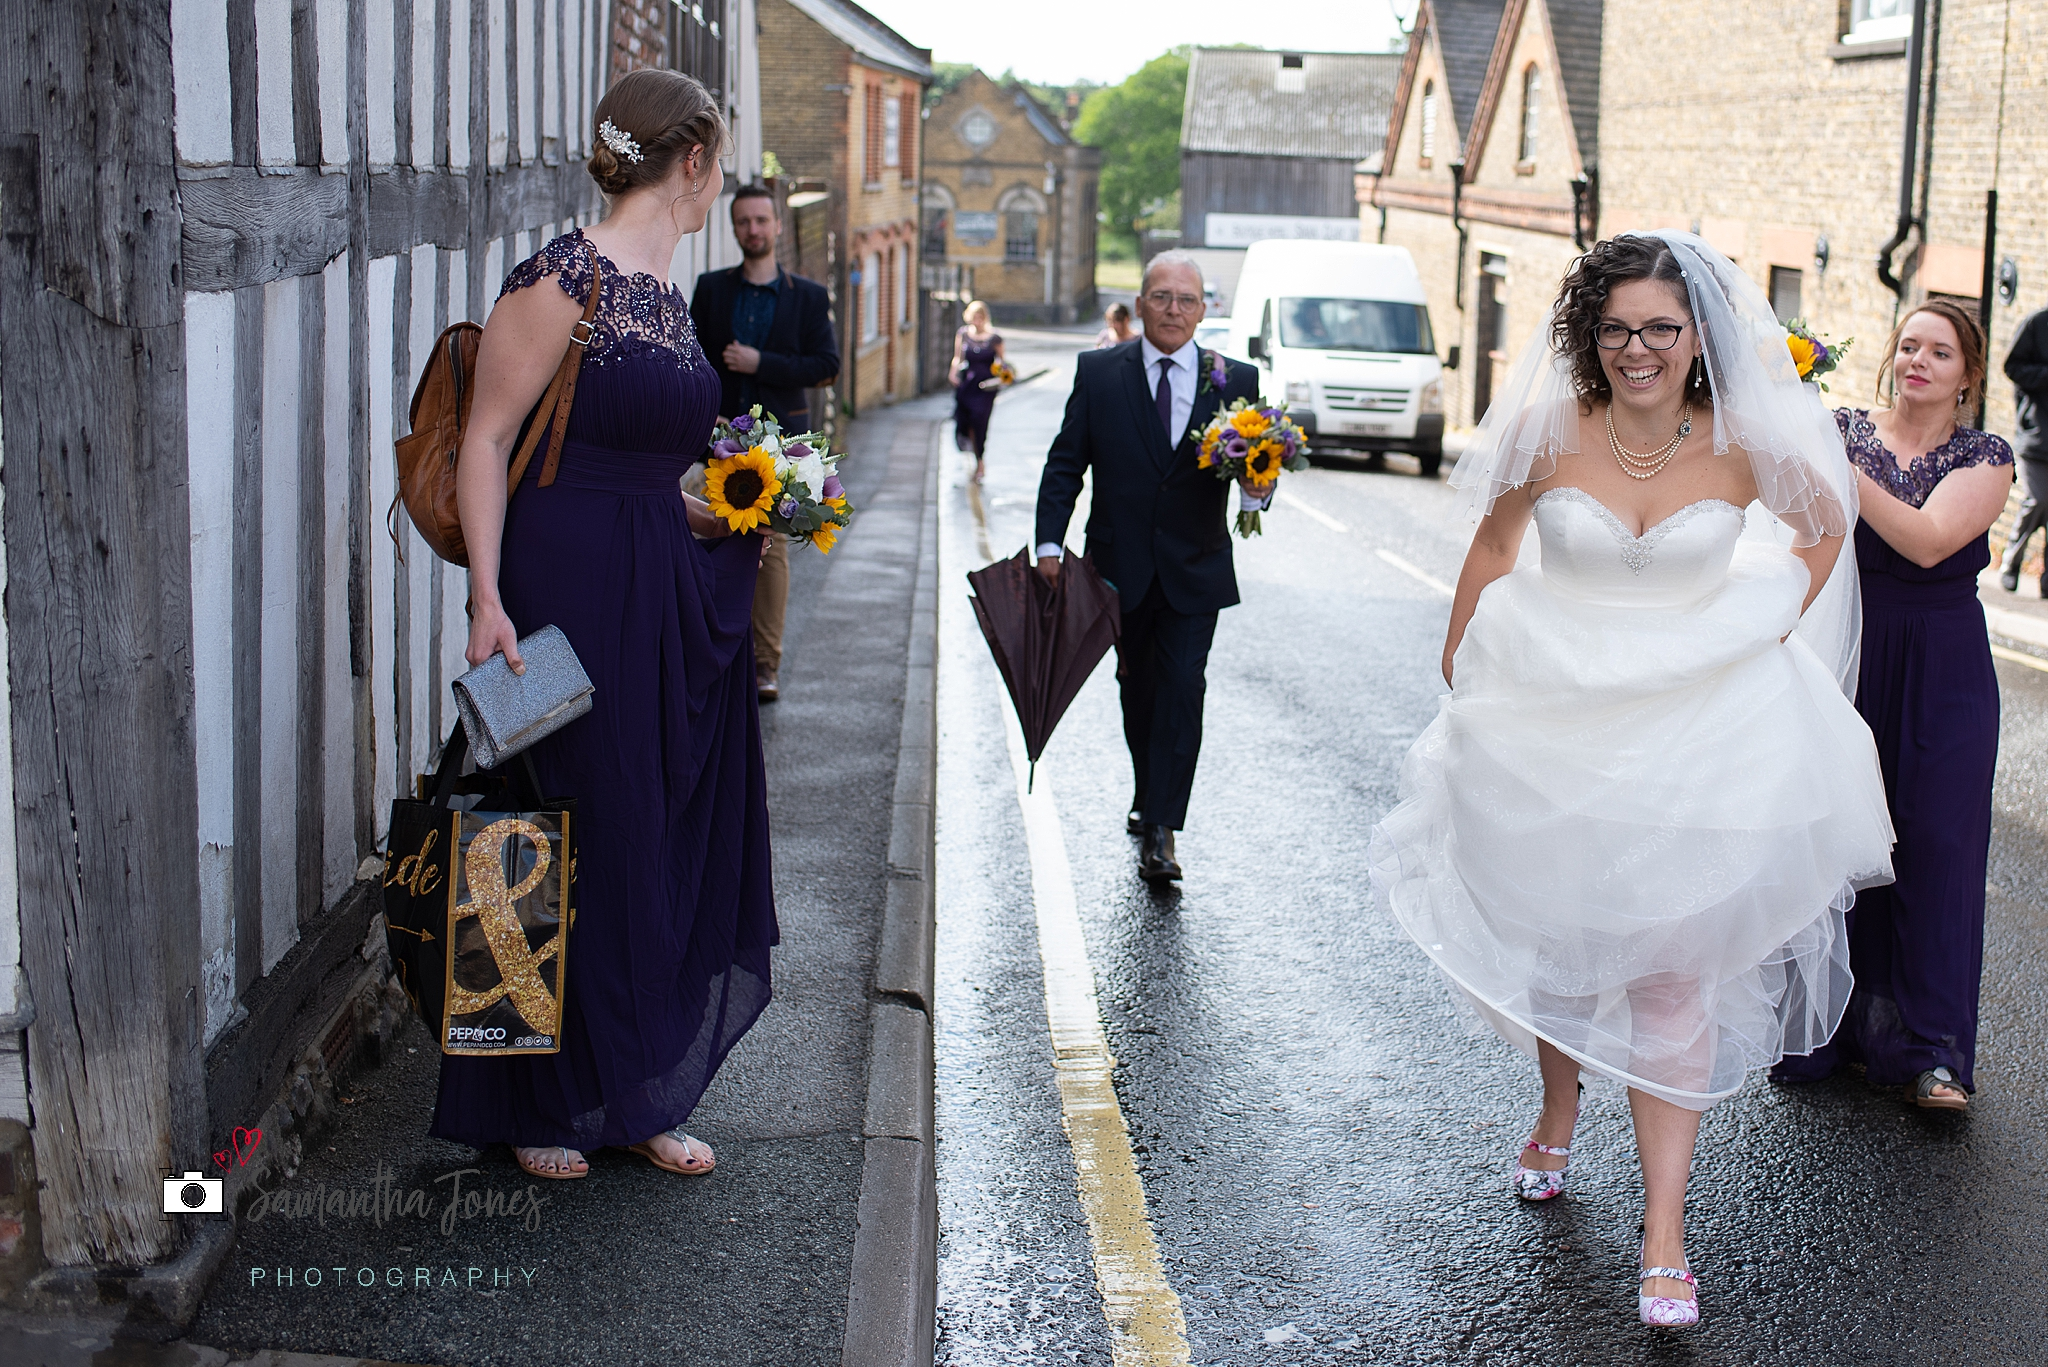 Faversham wedding, wedding in Faversham, The Old Brewery Store wedding